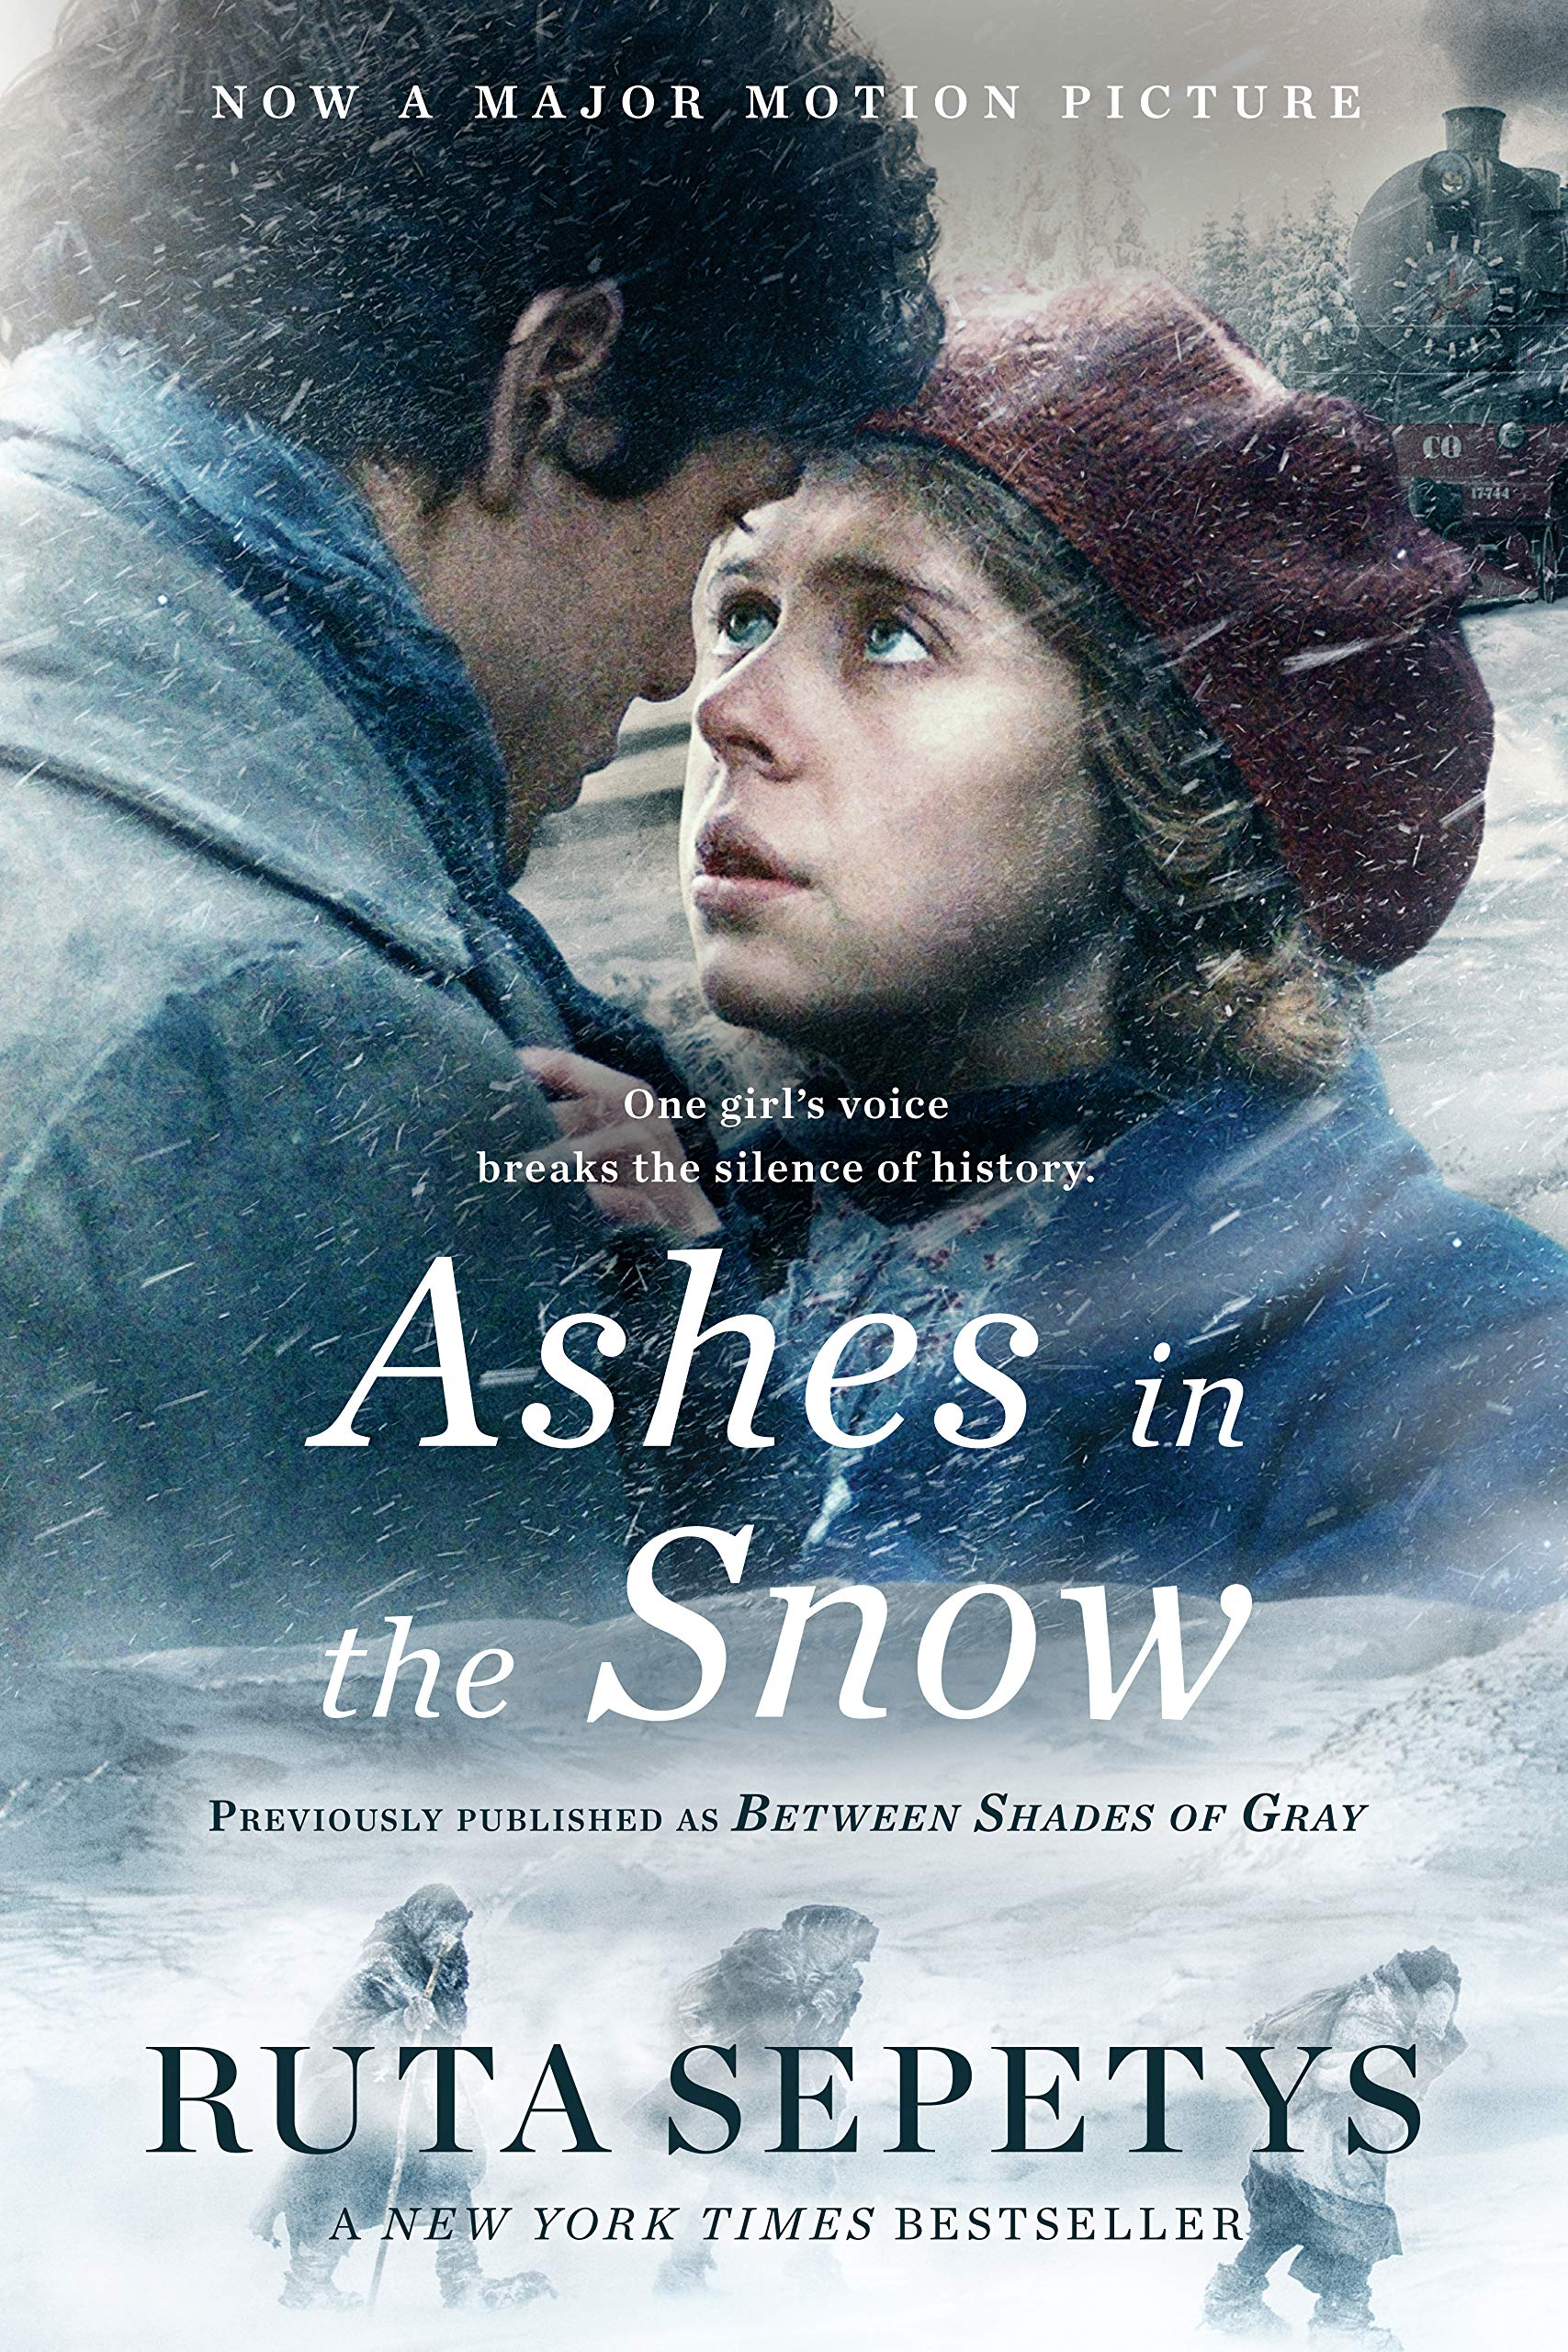 Resultado de imagen para ashes in the snow book